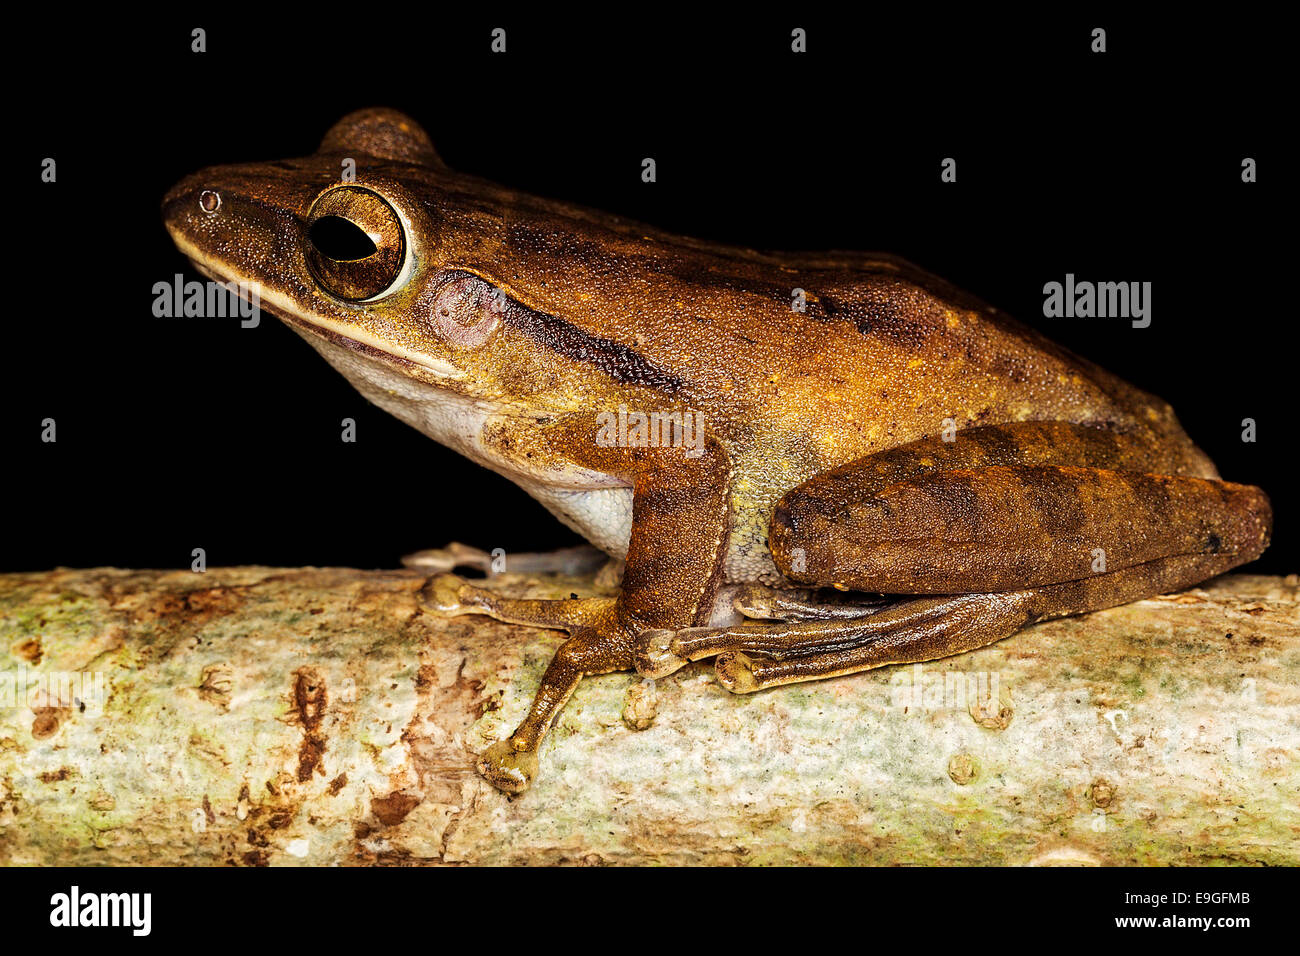 Common tree frog (Polypedates leucomystax) - Stock Image